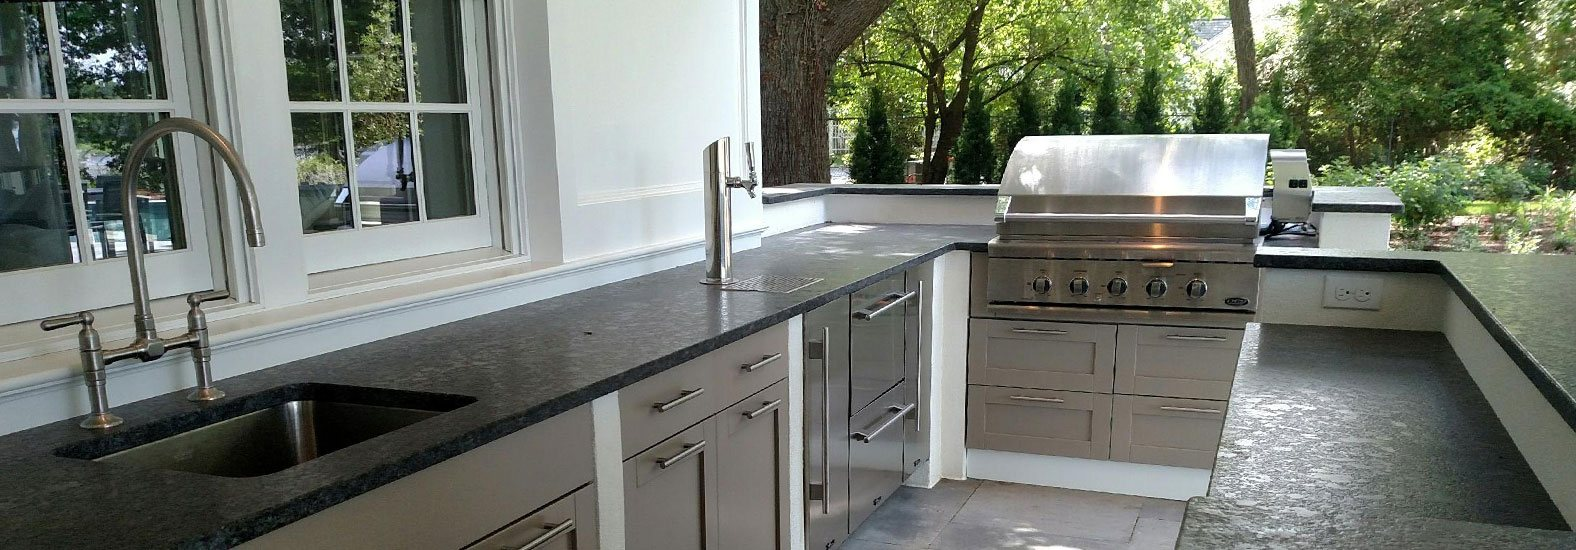 pemberton appliance custom design build outdoor kitchens